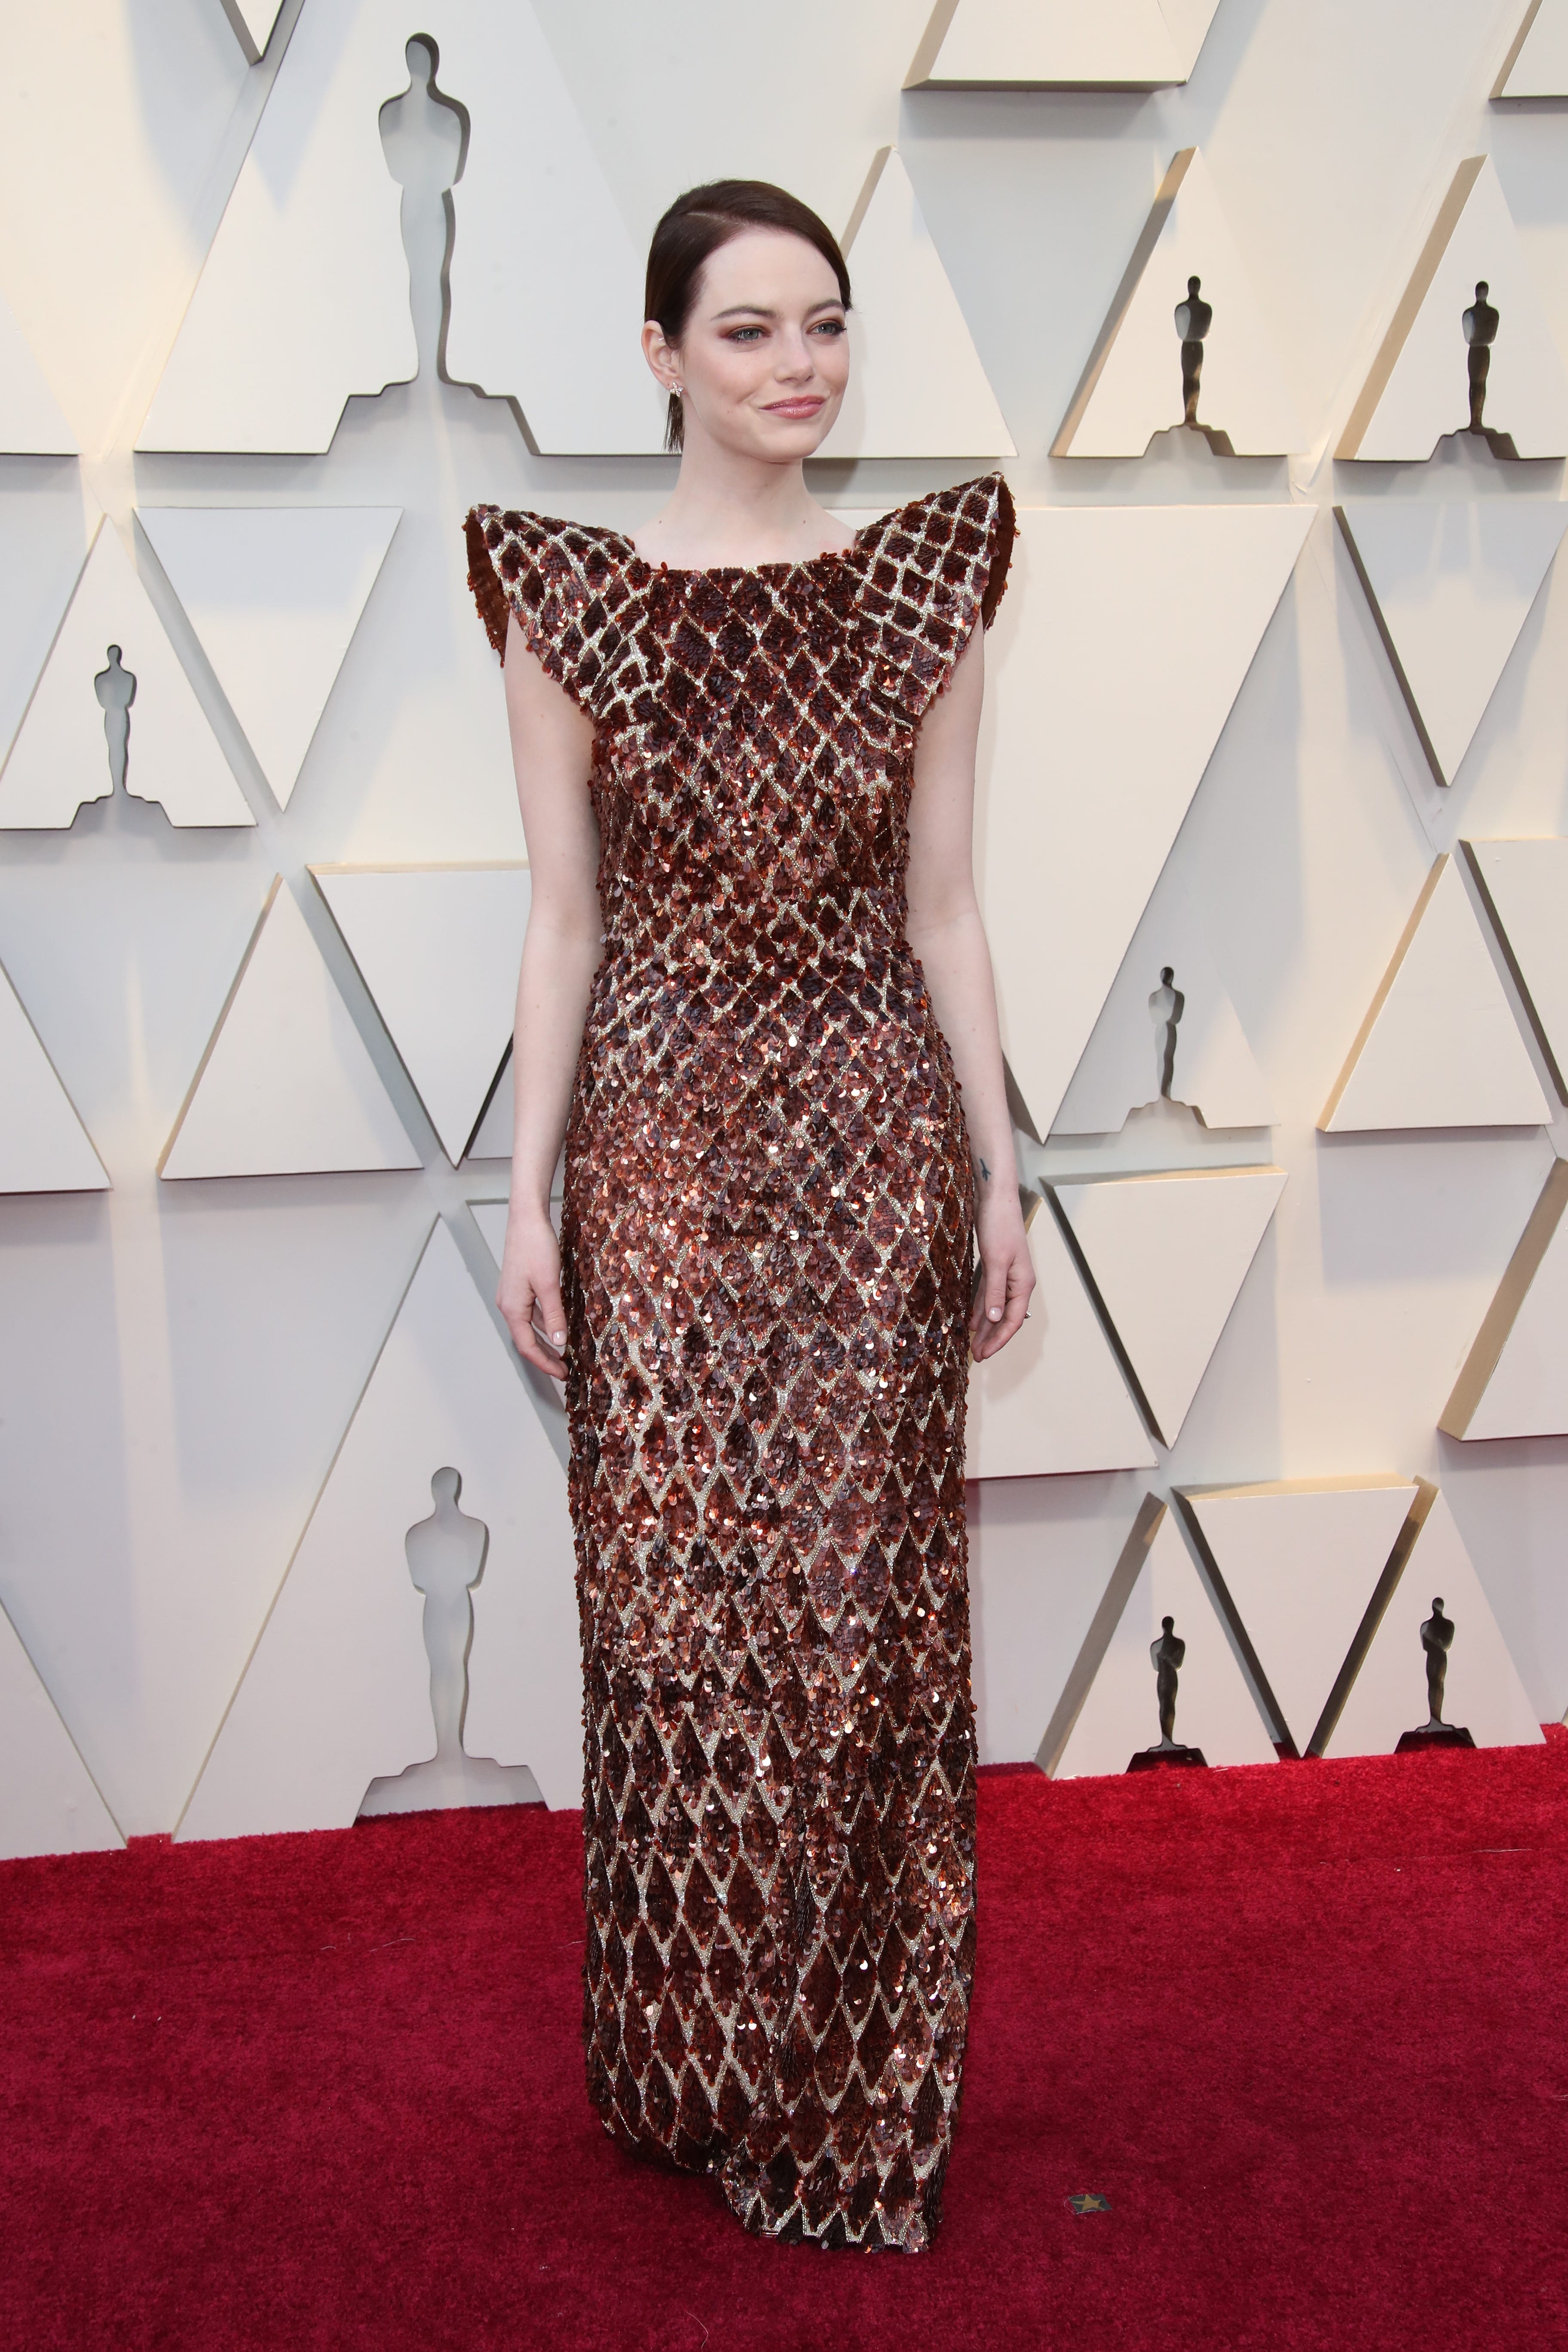 February 24, 2019; Los Angeles, CA, USA; Emma Stone arrives at the 91st Academy Awards at the Dolby Theatre. Mandatory Credit: Dan MacMedan-USA TODAY NETWORK (Via OlyDrop)